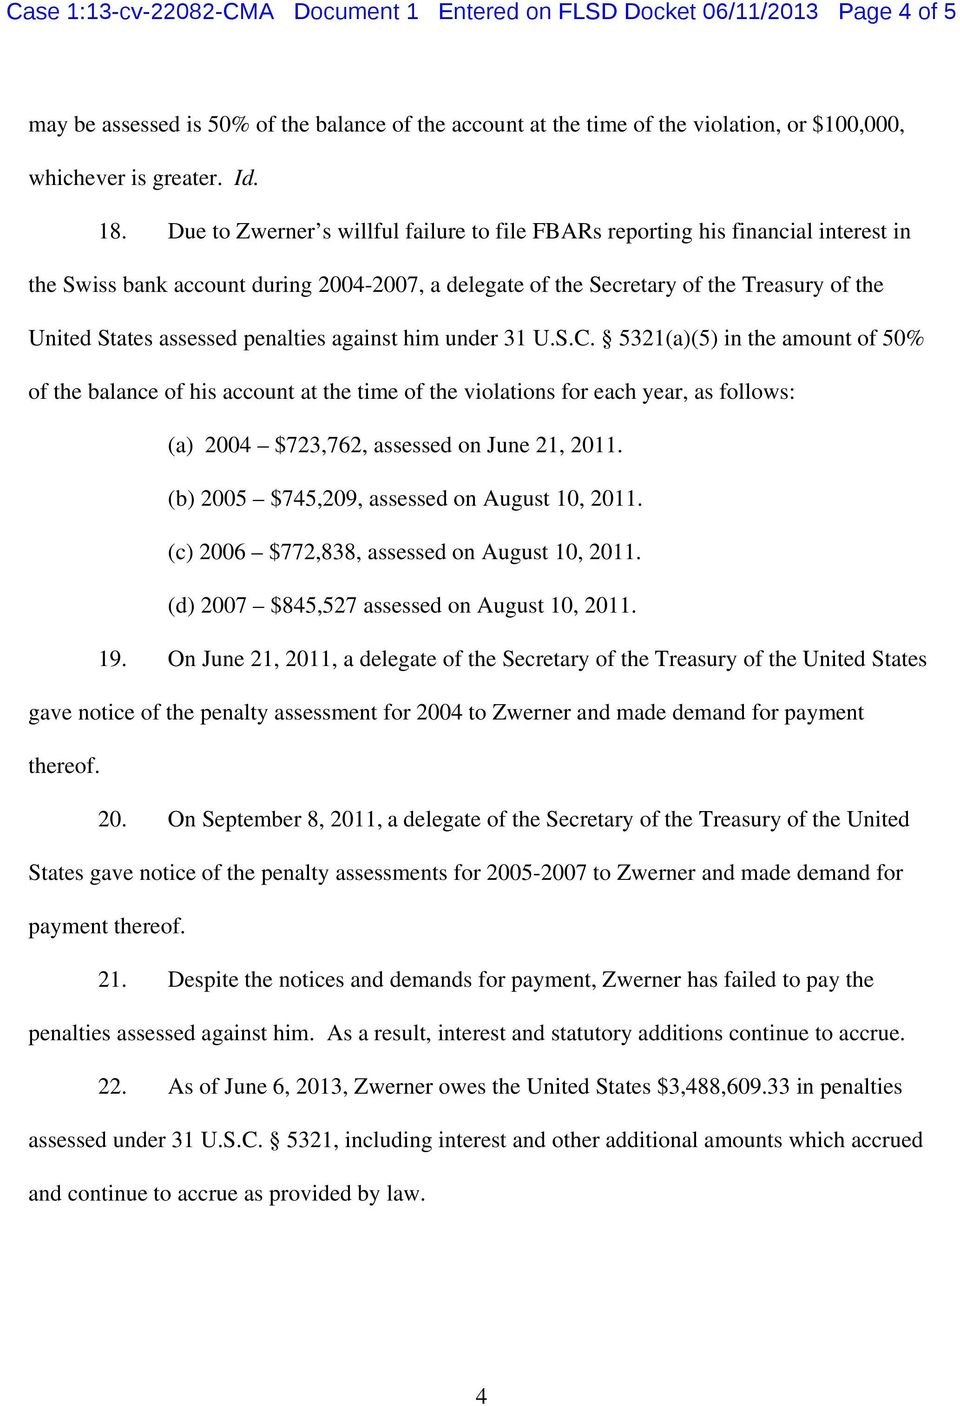 Due to Zwerner s willful failure to file FBARs reporting his financial interest in the Swiss bank account during 2004-2007, a delegate of the Secretary of the Treasury of the United States assessed